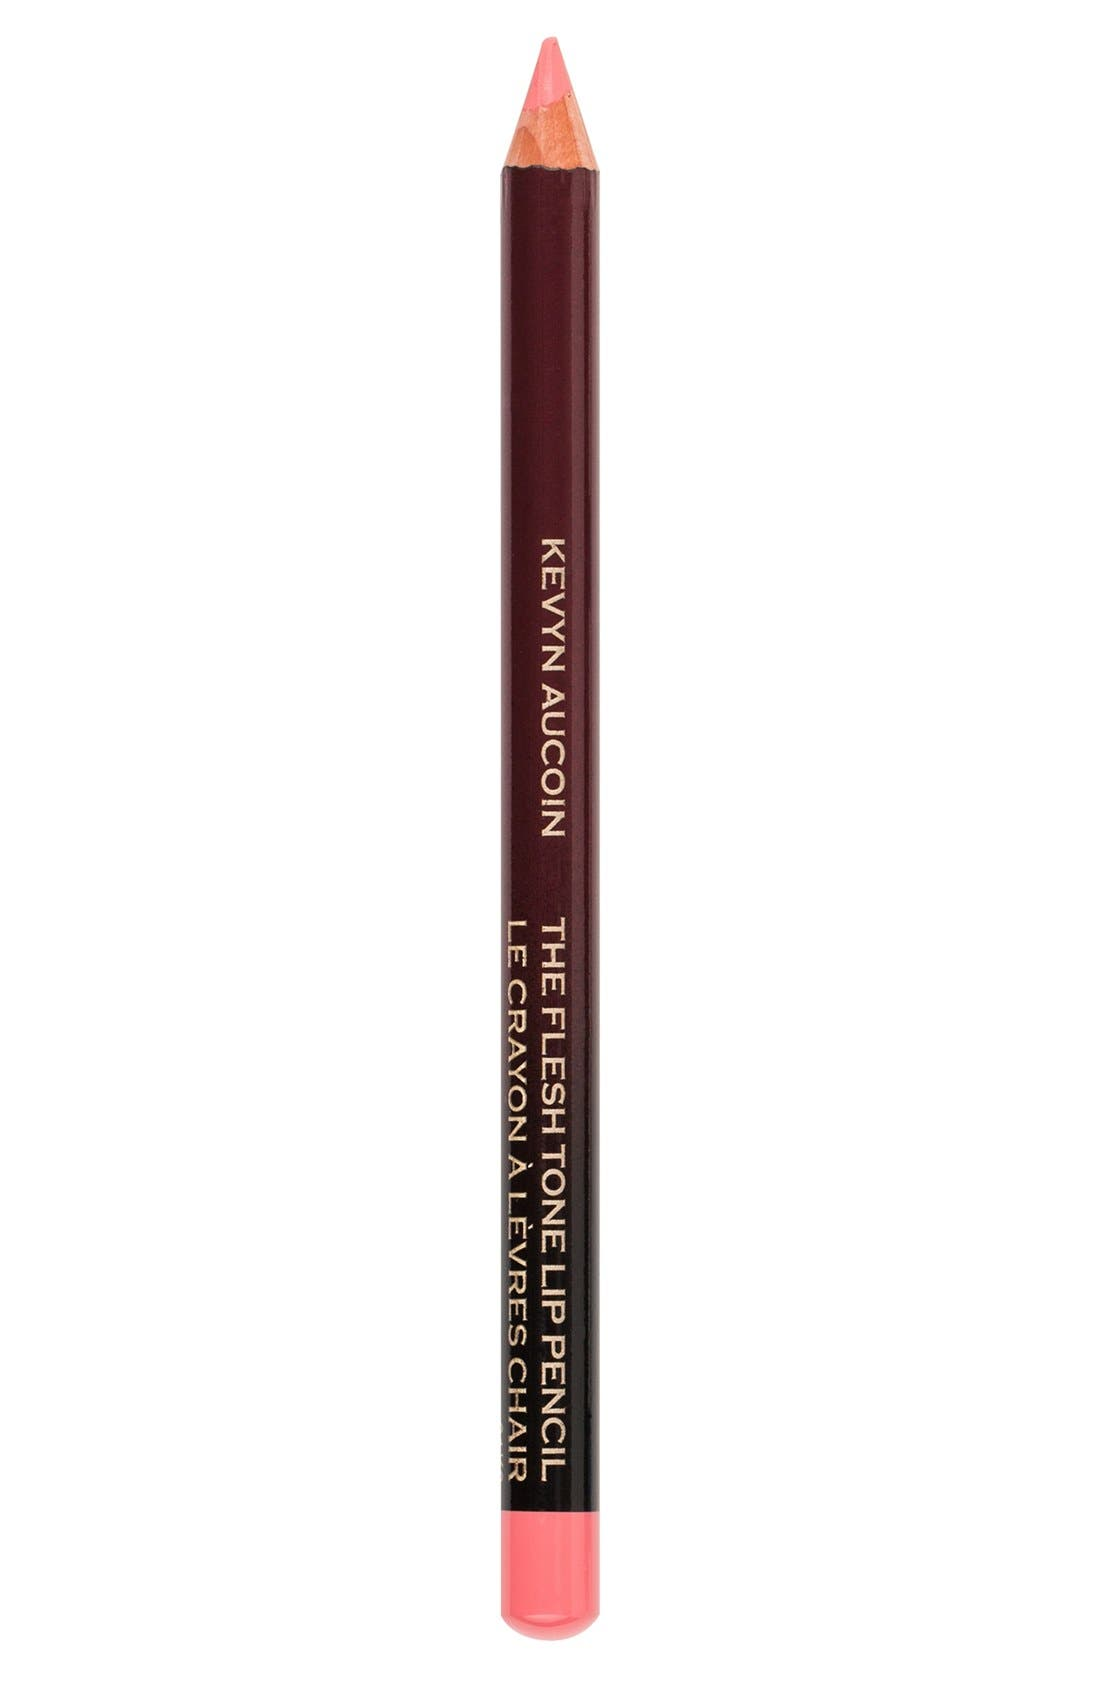 SPACE.NK.apothecary Kevyn Aucoin The Flesh Tone Lip Pencil